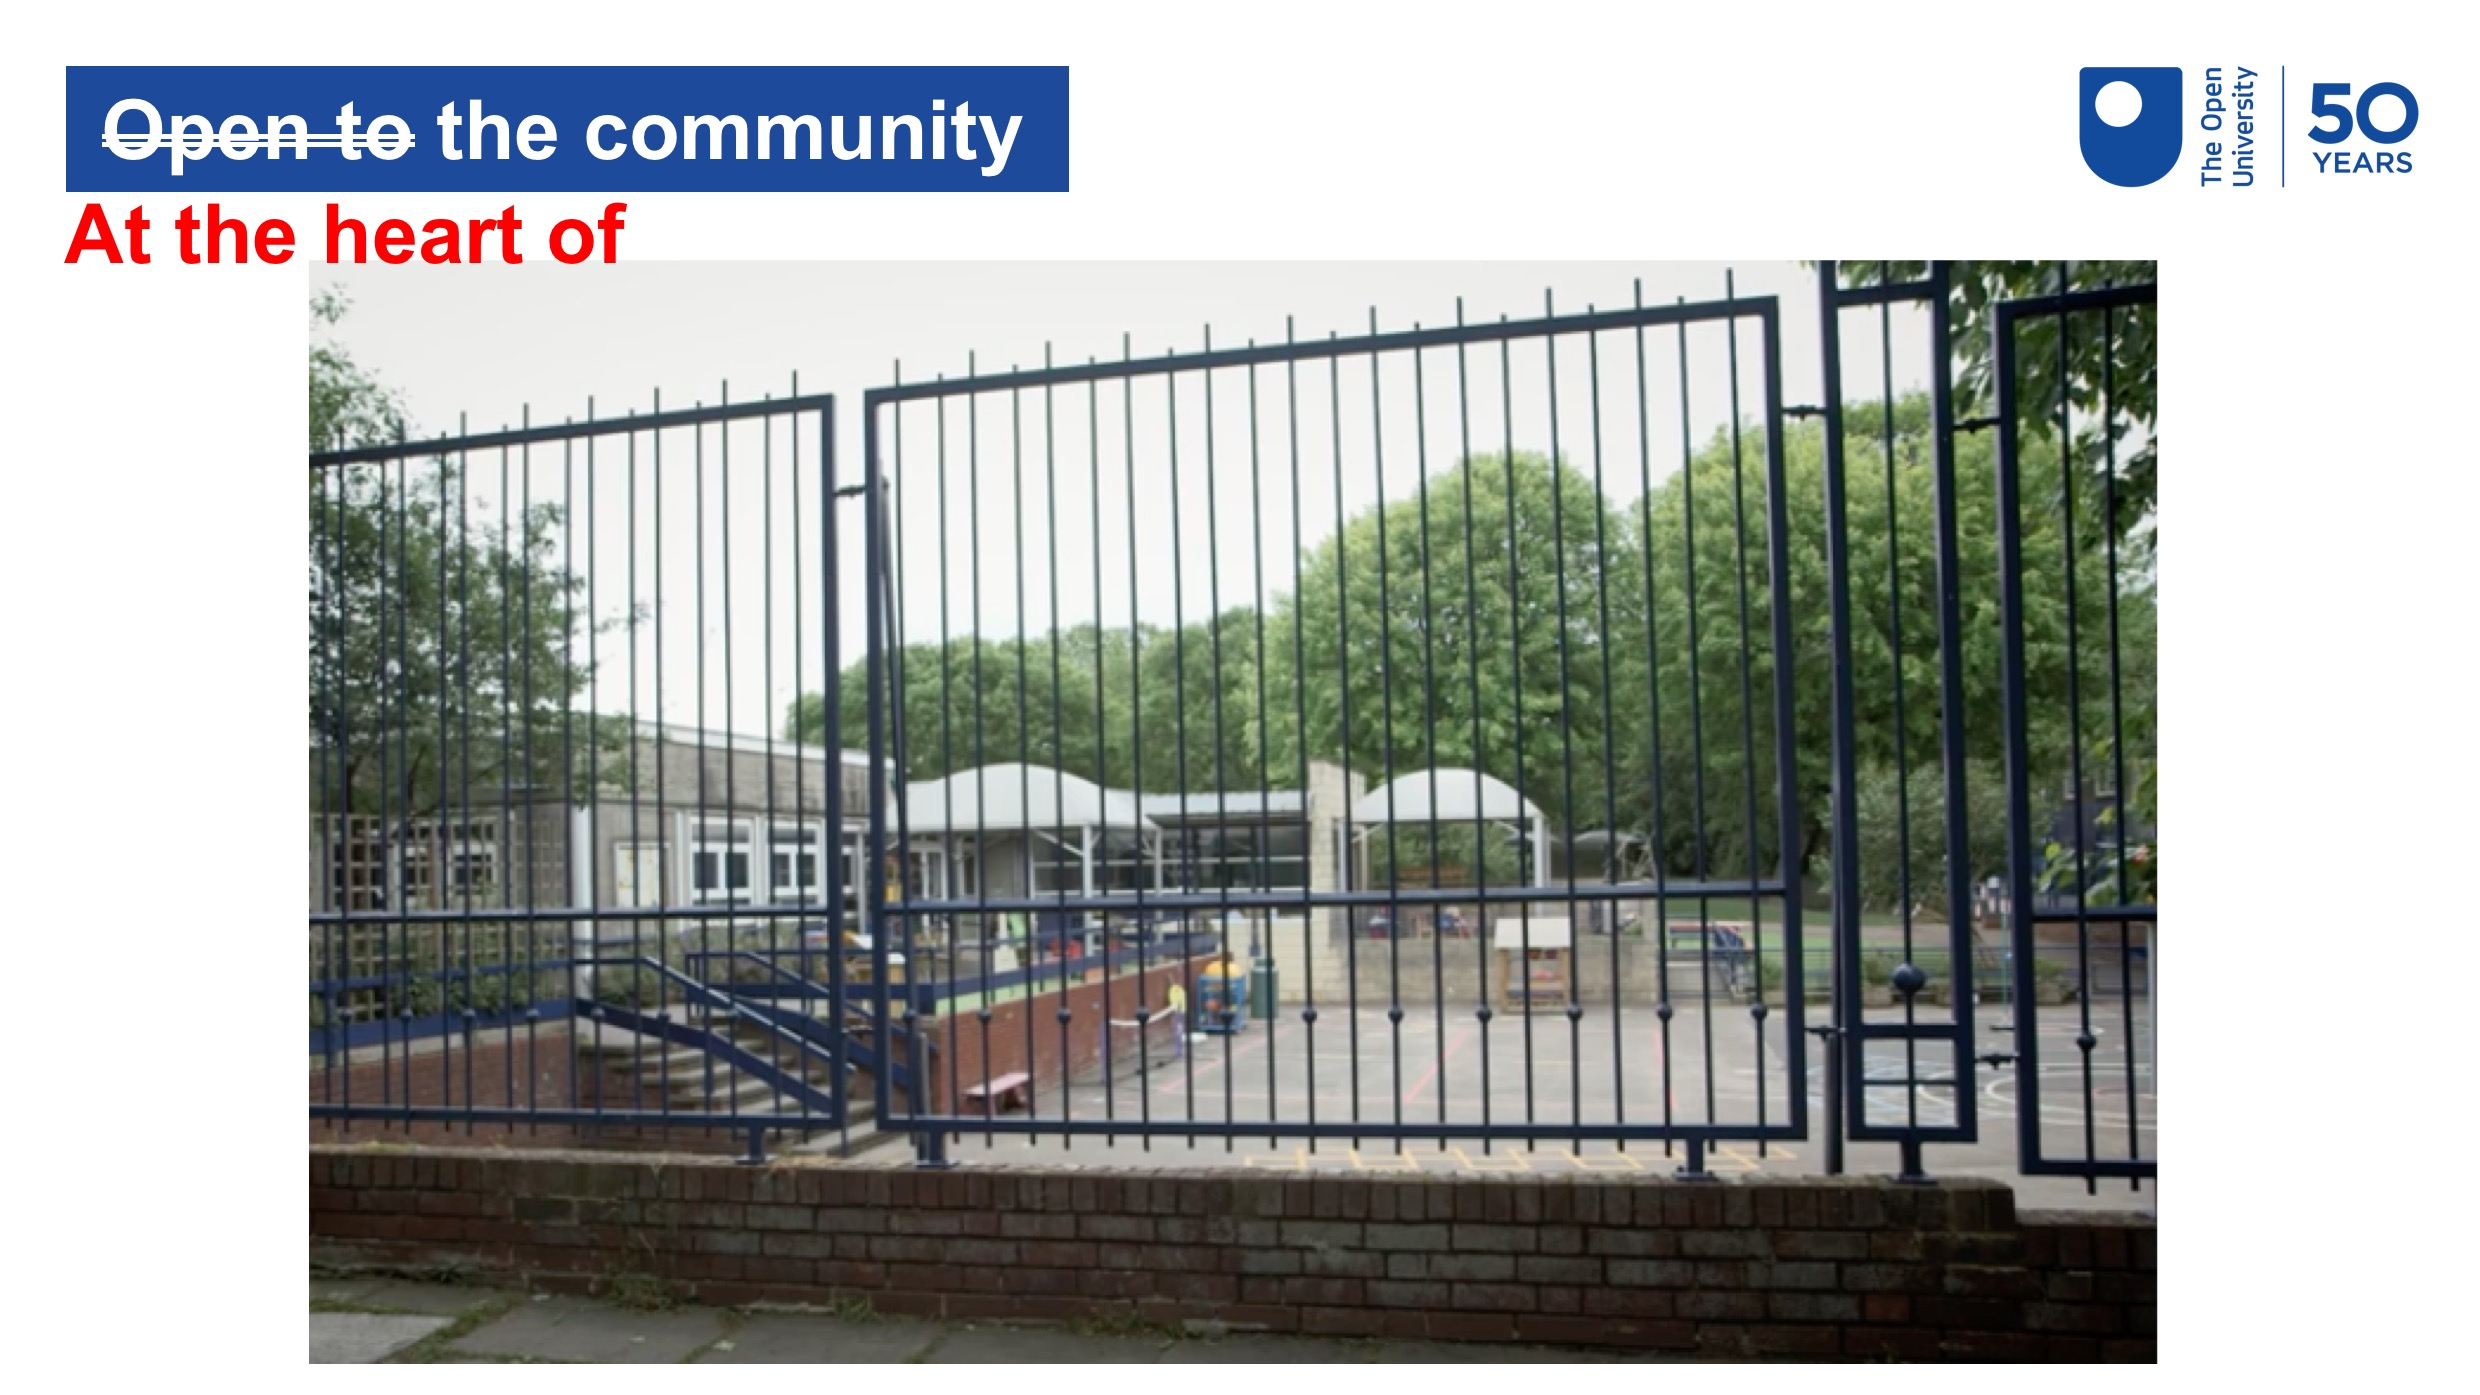 Photo of a metal security fence around a school